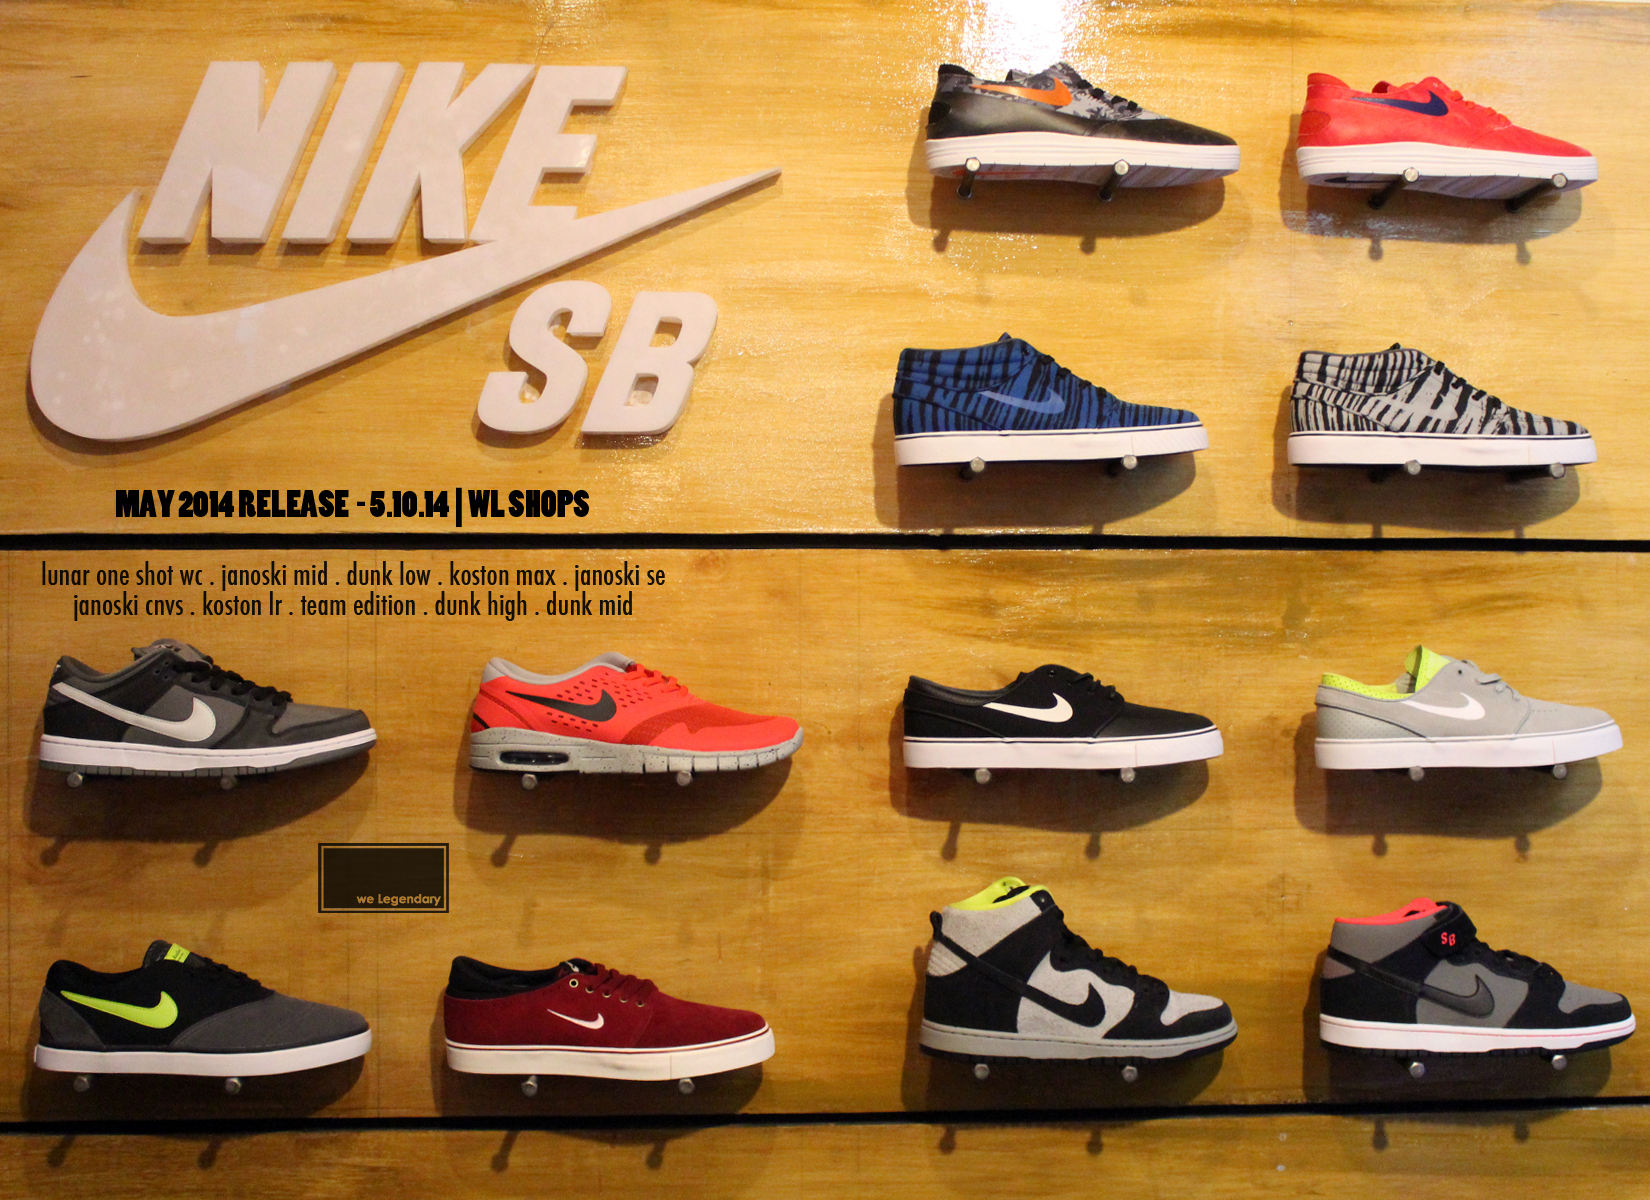 a457b5a9fcb4 weLegendary set for giant Nike SB release – SLAMonline Philippines